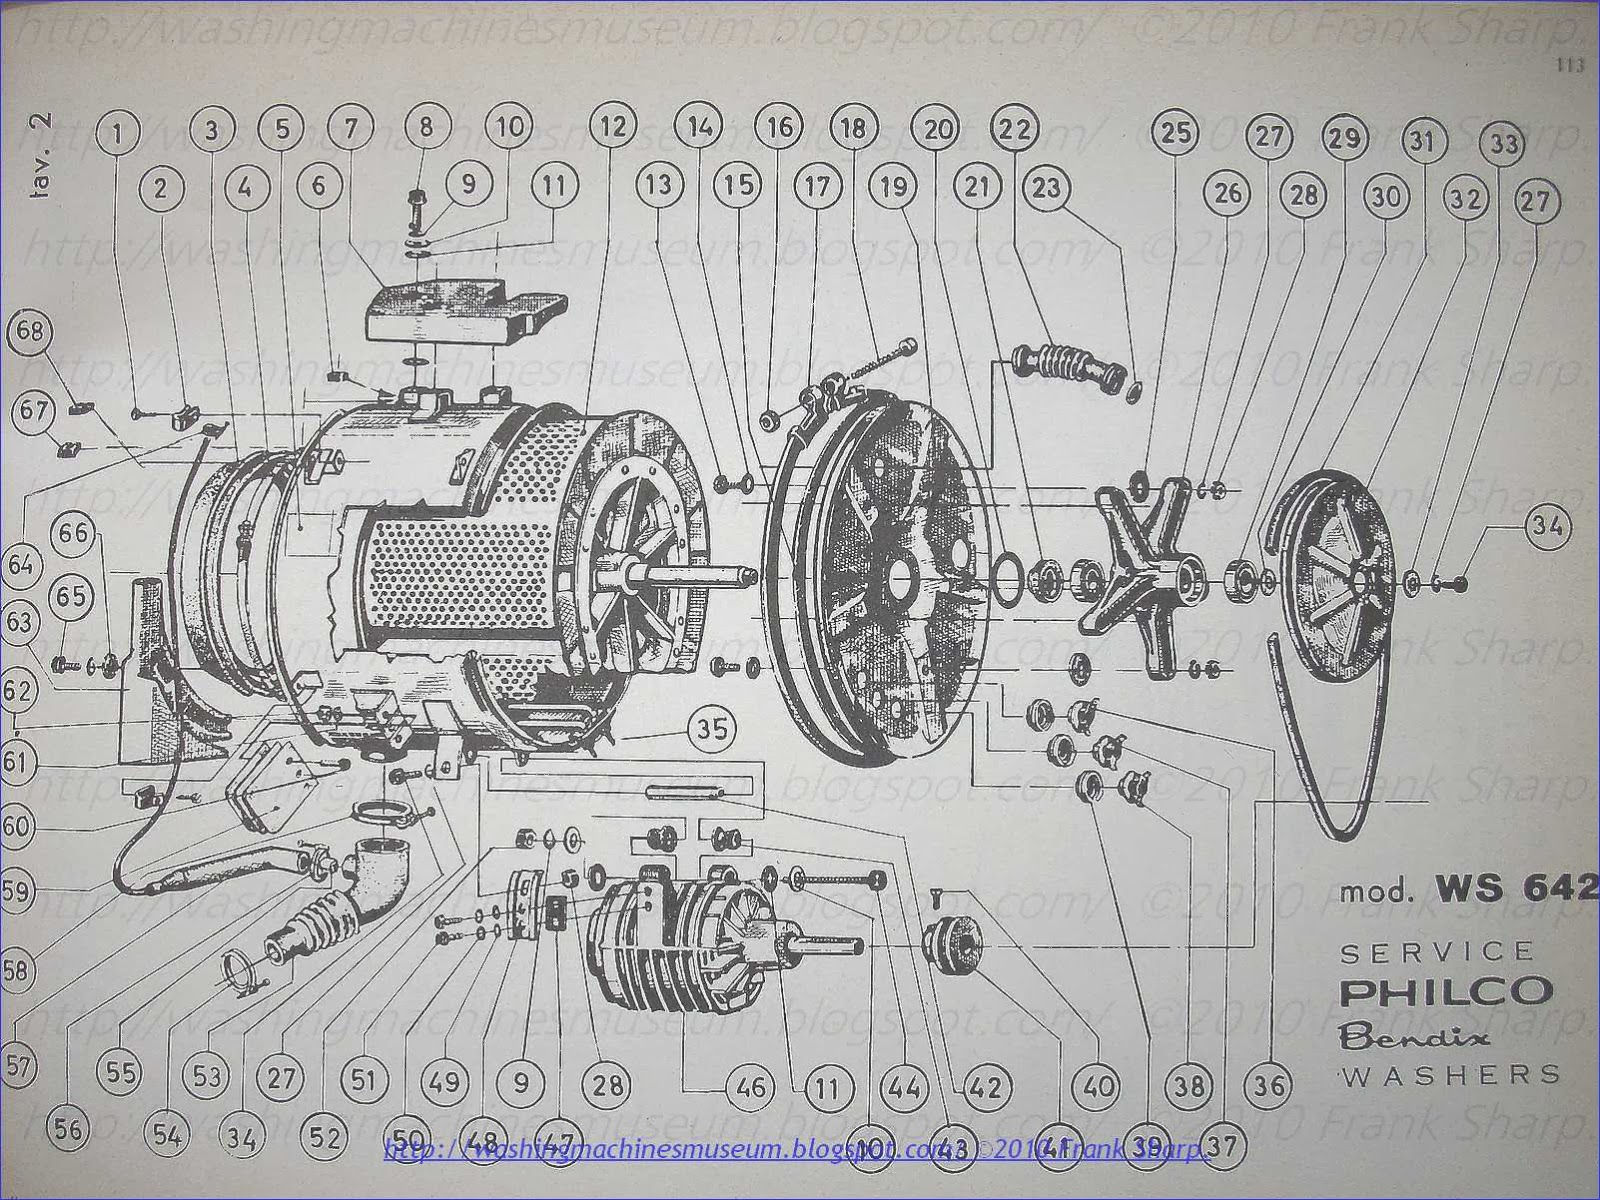 Philco Washer Motor Wiring Diagram Free Download Kenmore Washing Machine Rama Museum Bendix Ws642 Schematic At